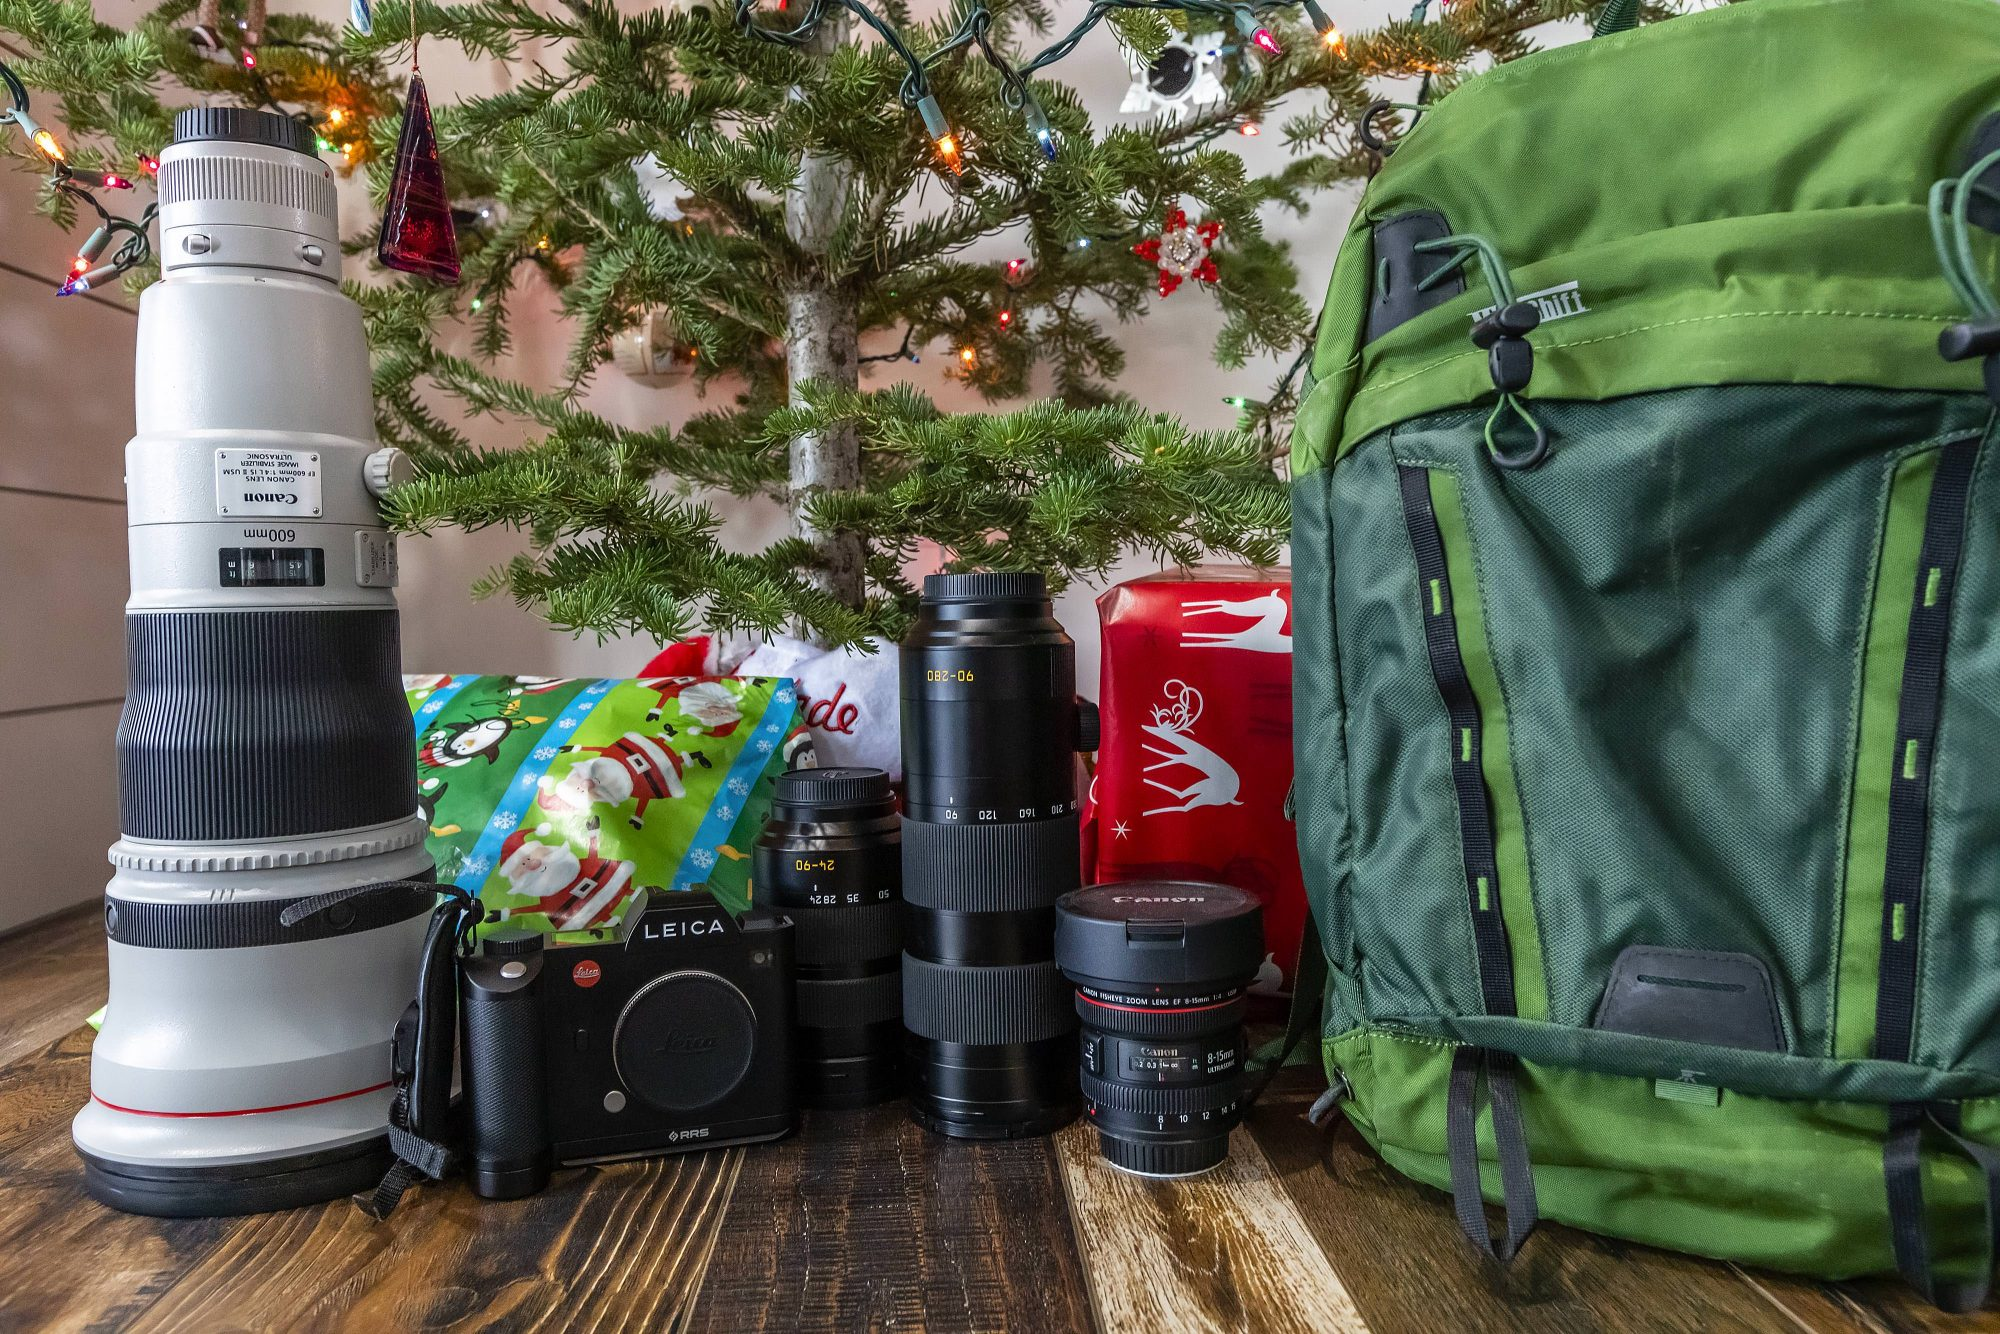 photographer Christmas gift - photo by Jay Goodrich